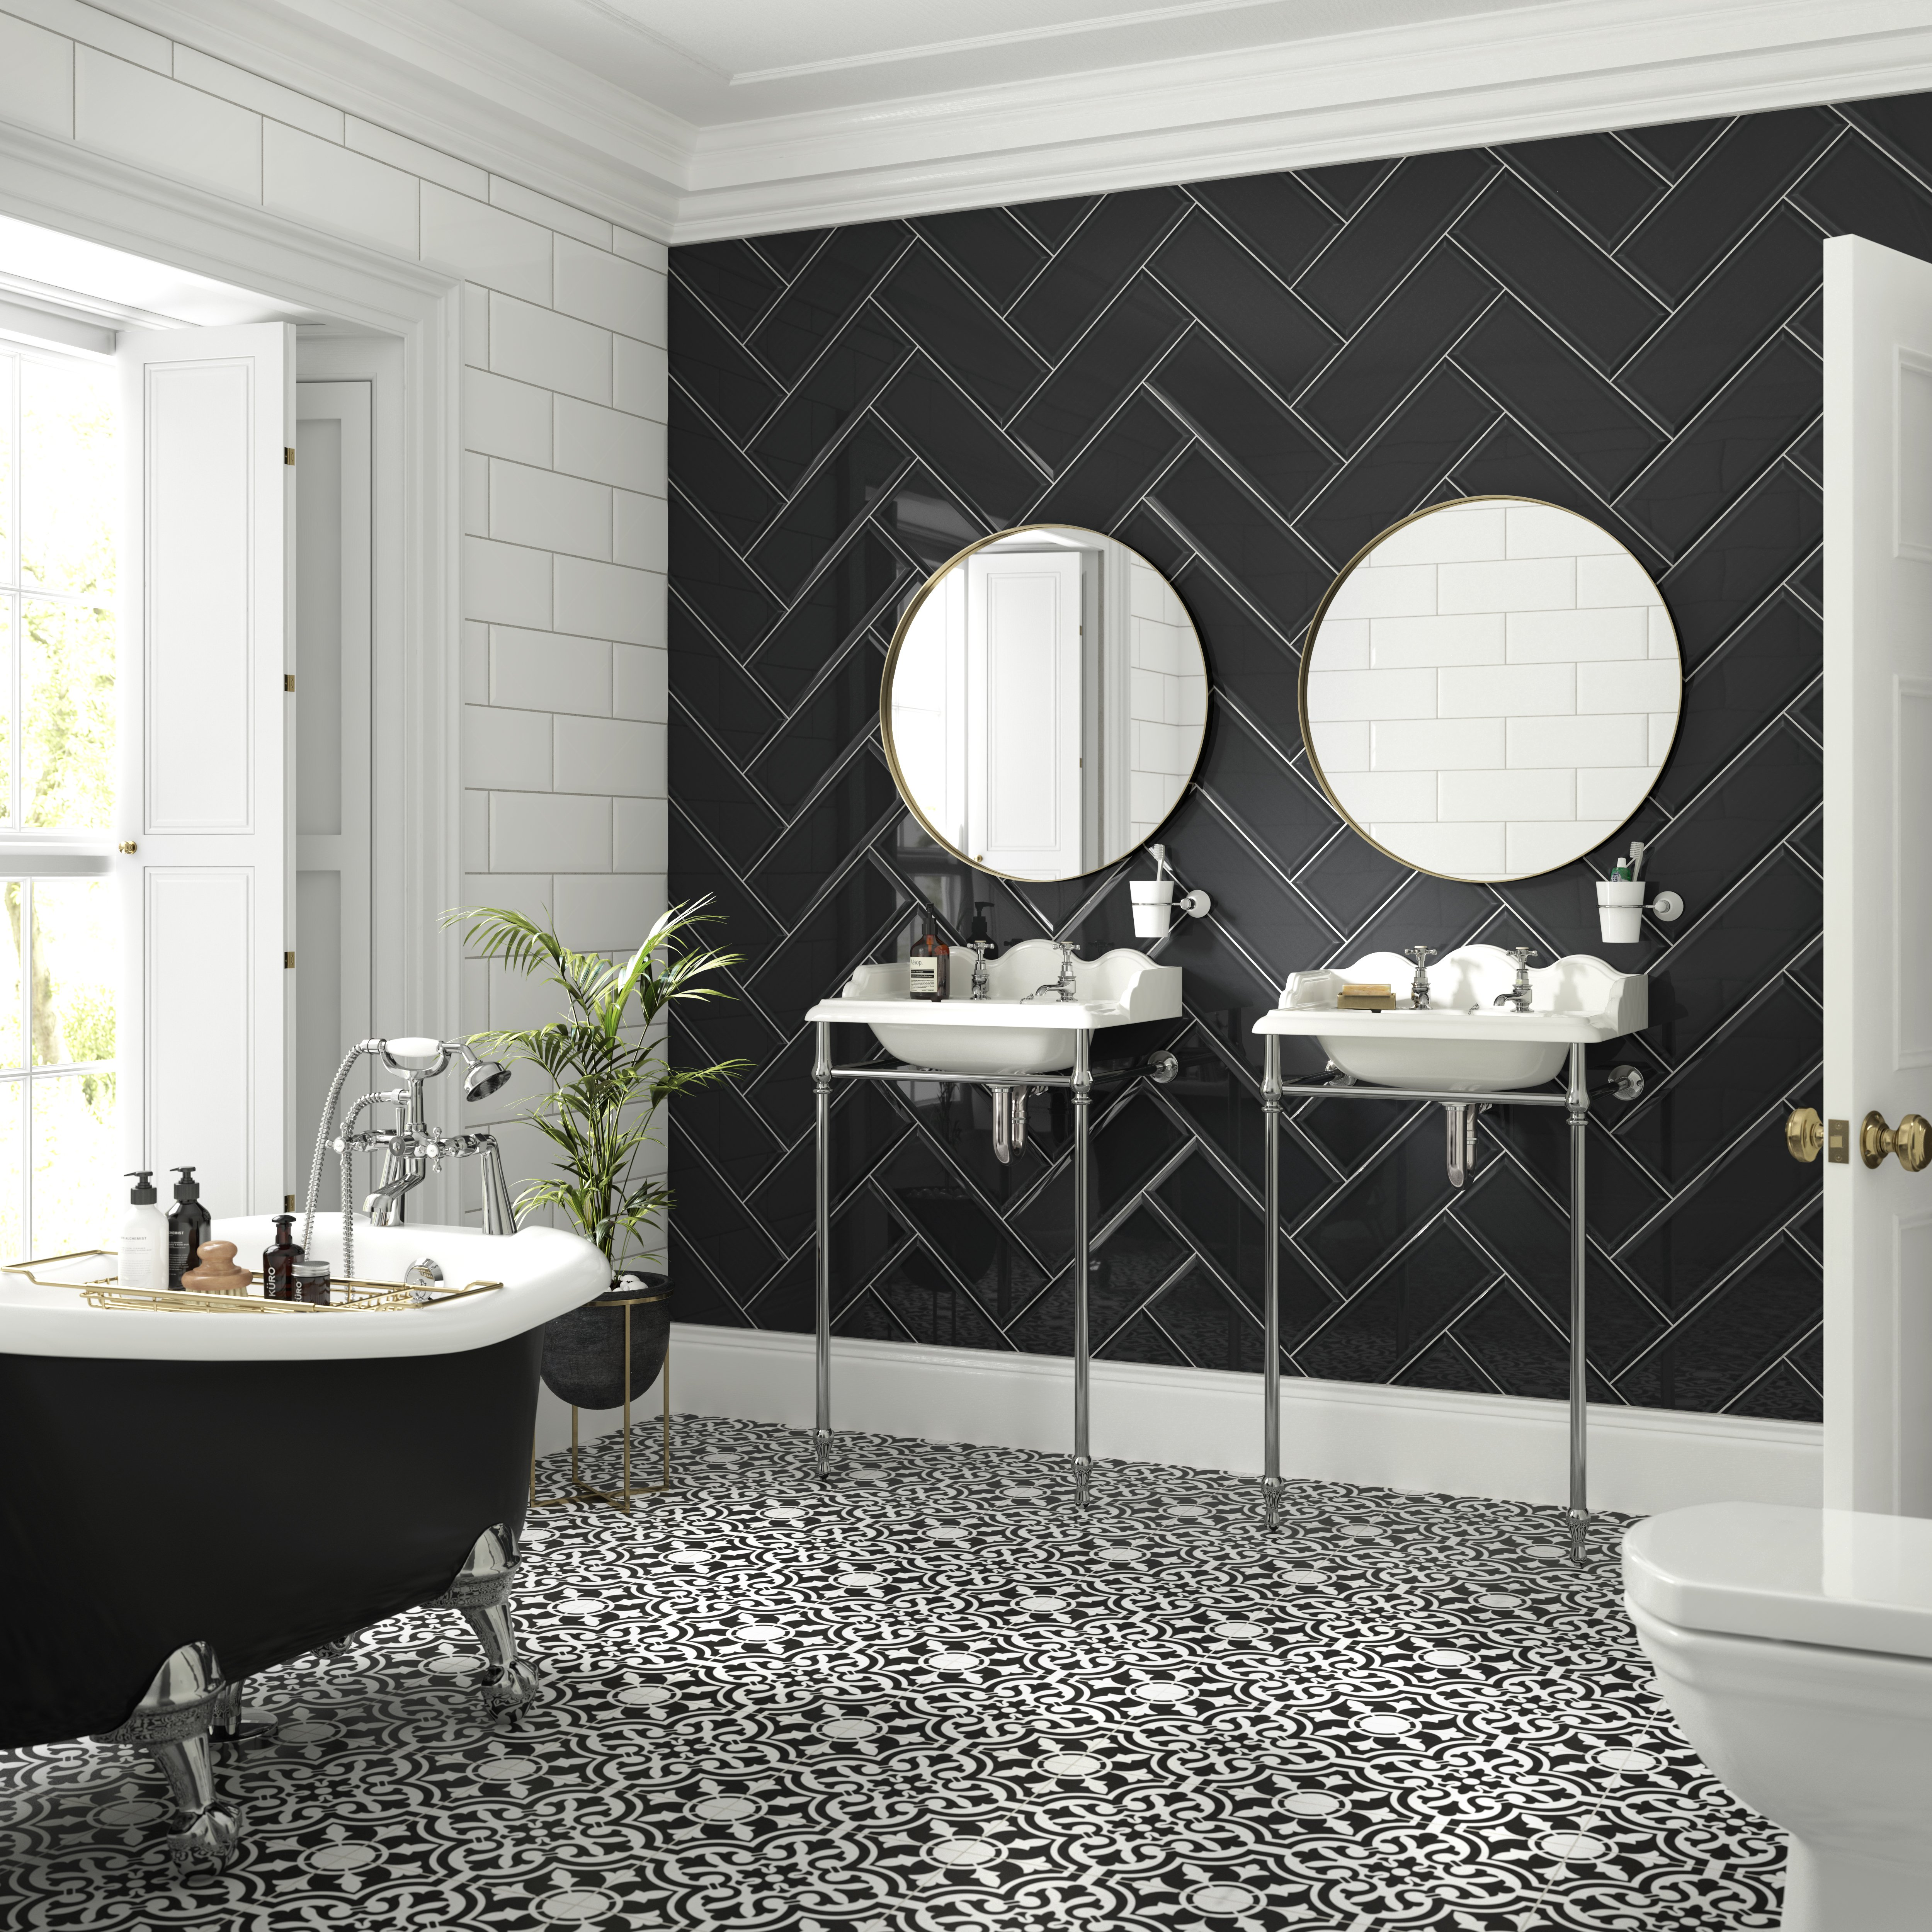 Devonshire_DEV01N_Black_Matt_330x330mm_with_Form_FORM1A_Winter_FORM8A_Charcoal_Gloss_400x150mm_Bathroom [1].jpg